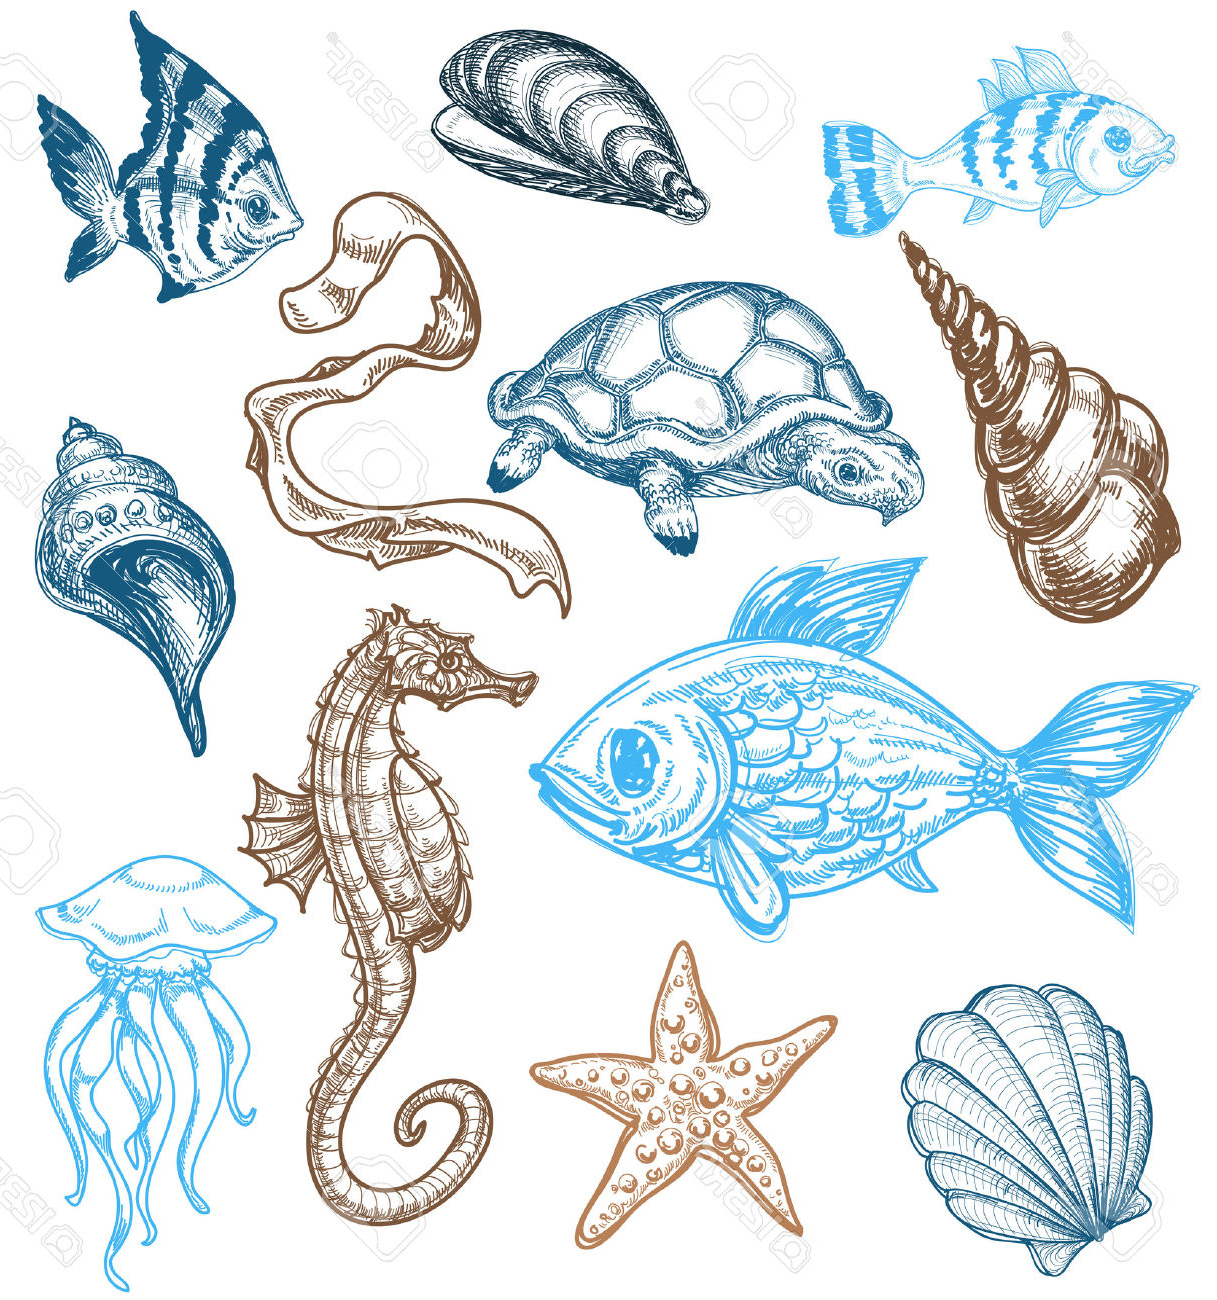 Sea Animal Drawing at GetDrawings.com | Free for personal use Sea ...